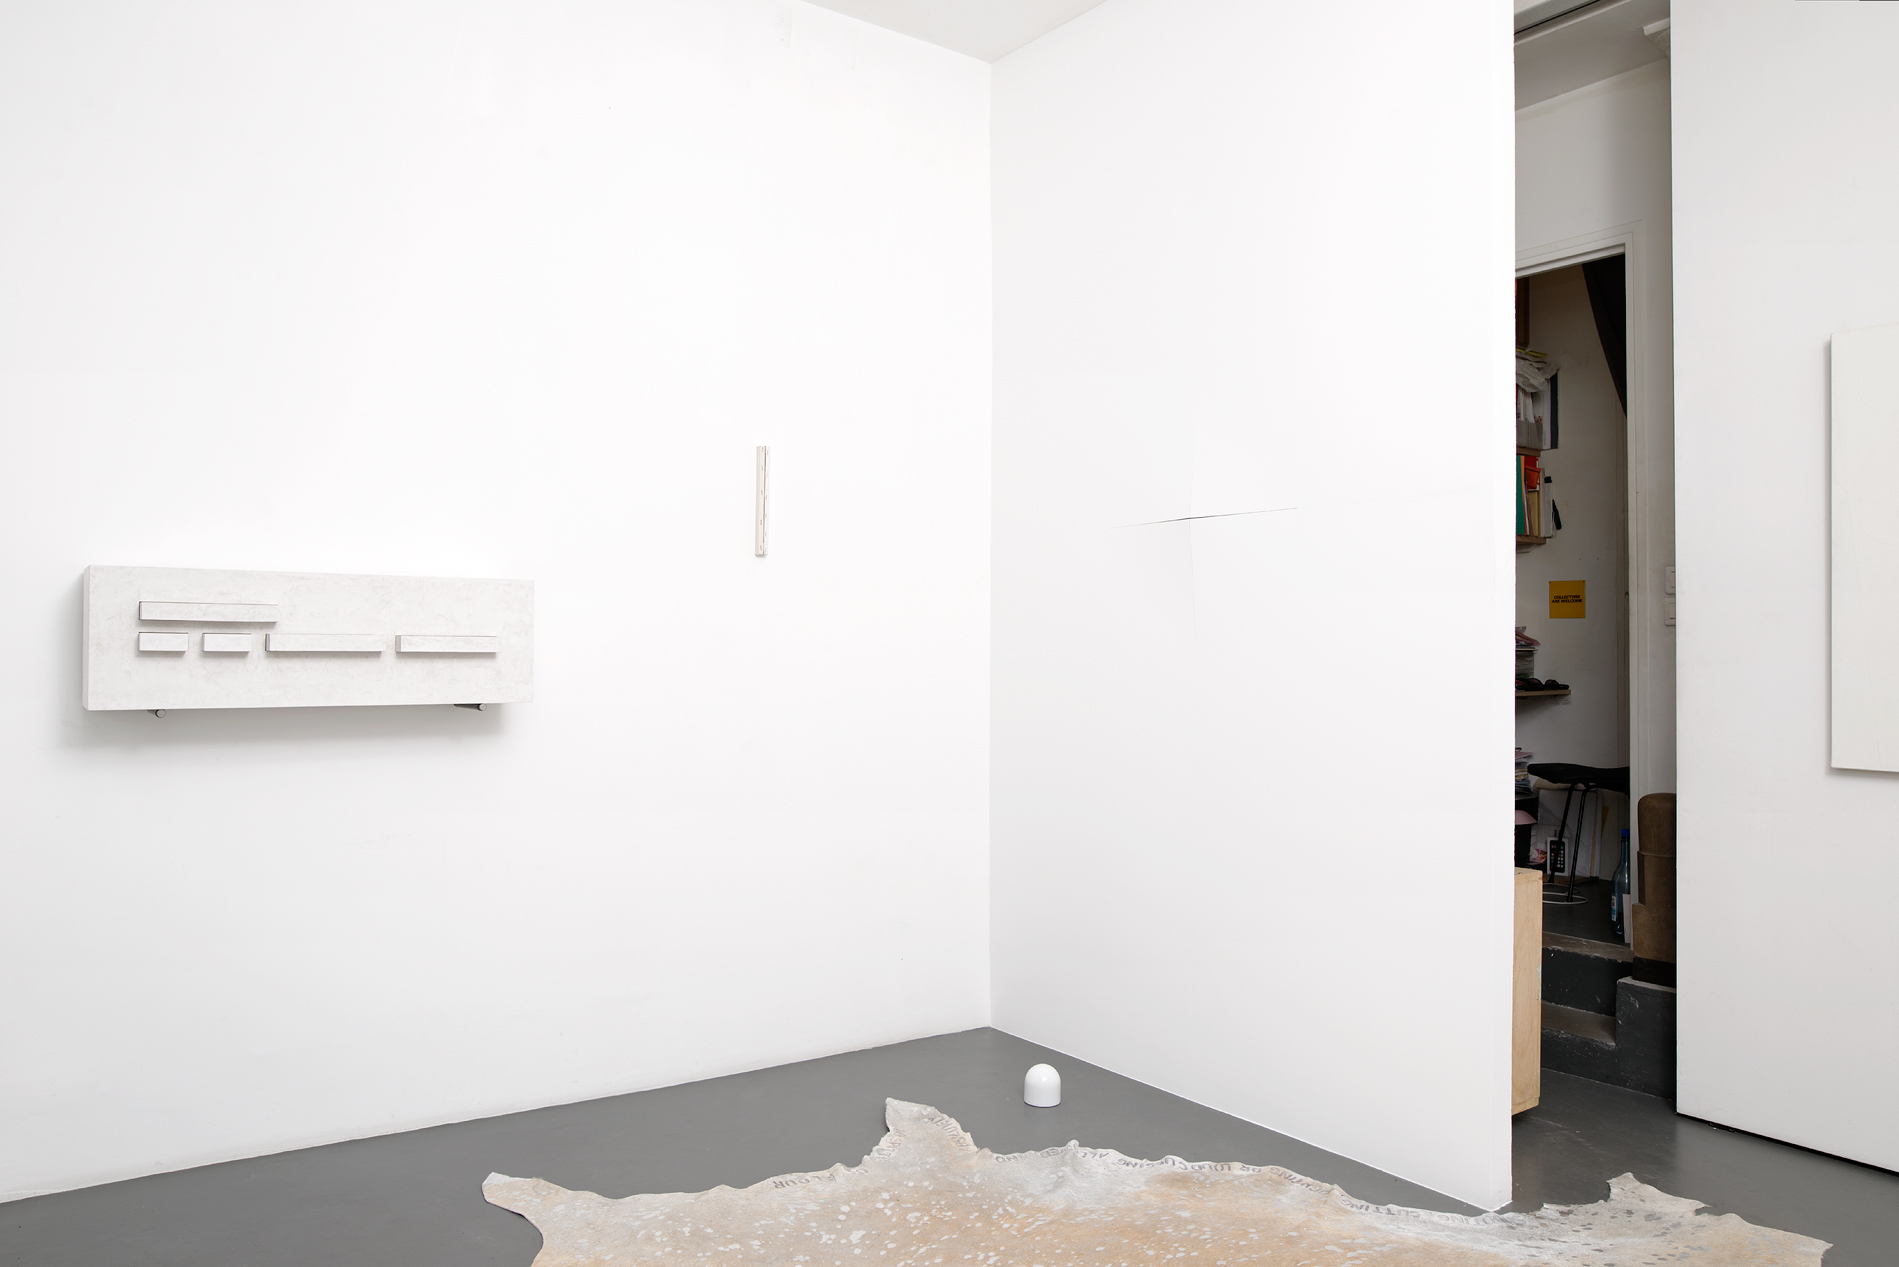 <em>022: Kaolin curated by Marianne Derrien&nbsp;</em>                         11.06.2015  &mdash;  18.07.2015, Opening 11.06.2015